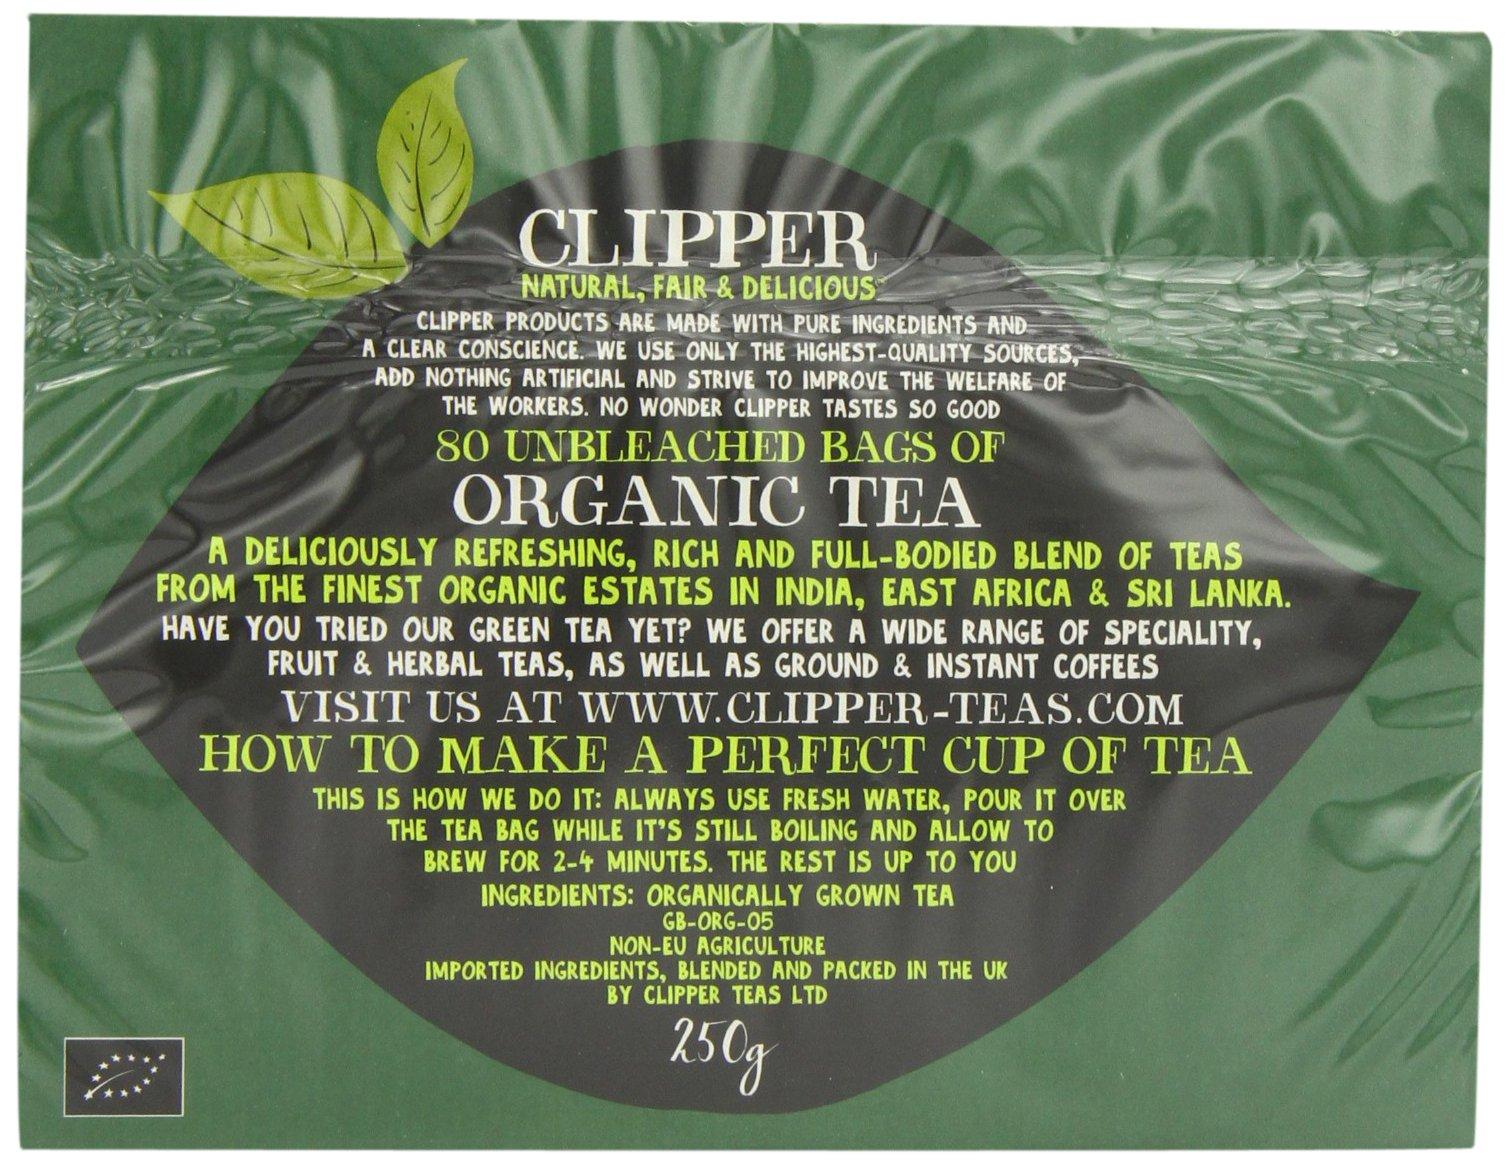 Clipper Teas - Everydays - Organic Tea - 80 Bags (Case of 6) by Clipper Tea (Image #3)